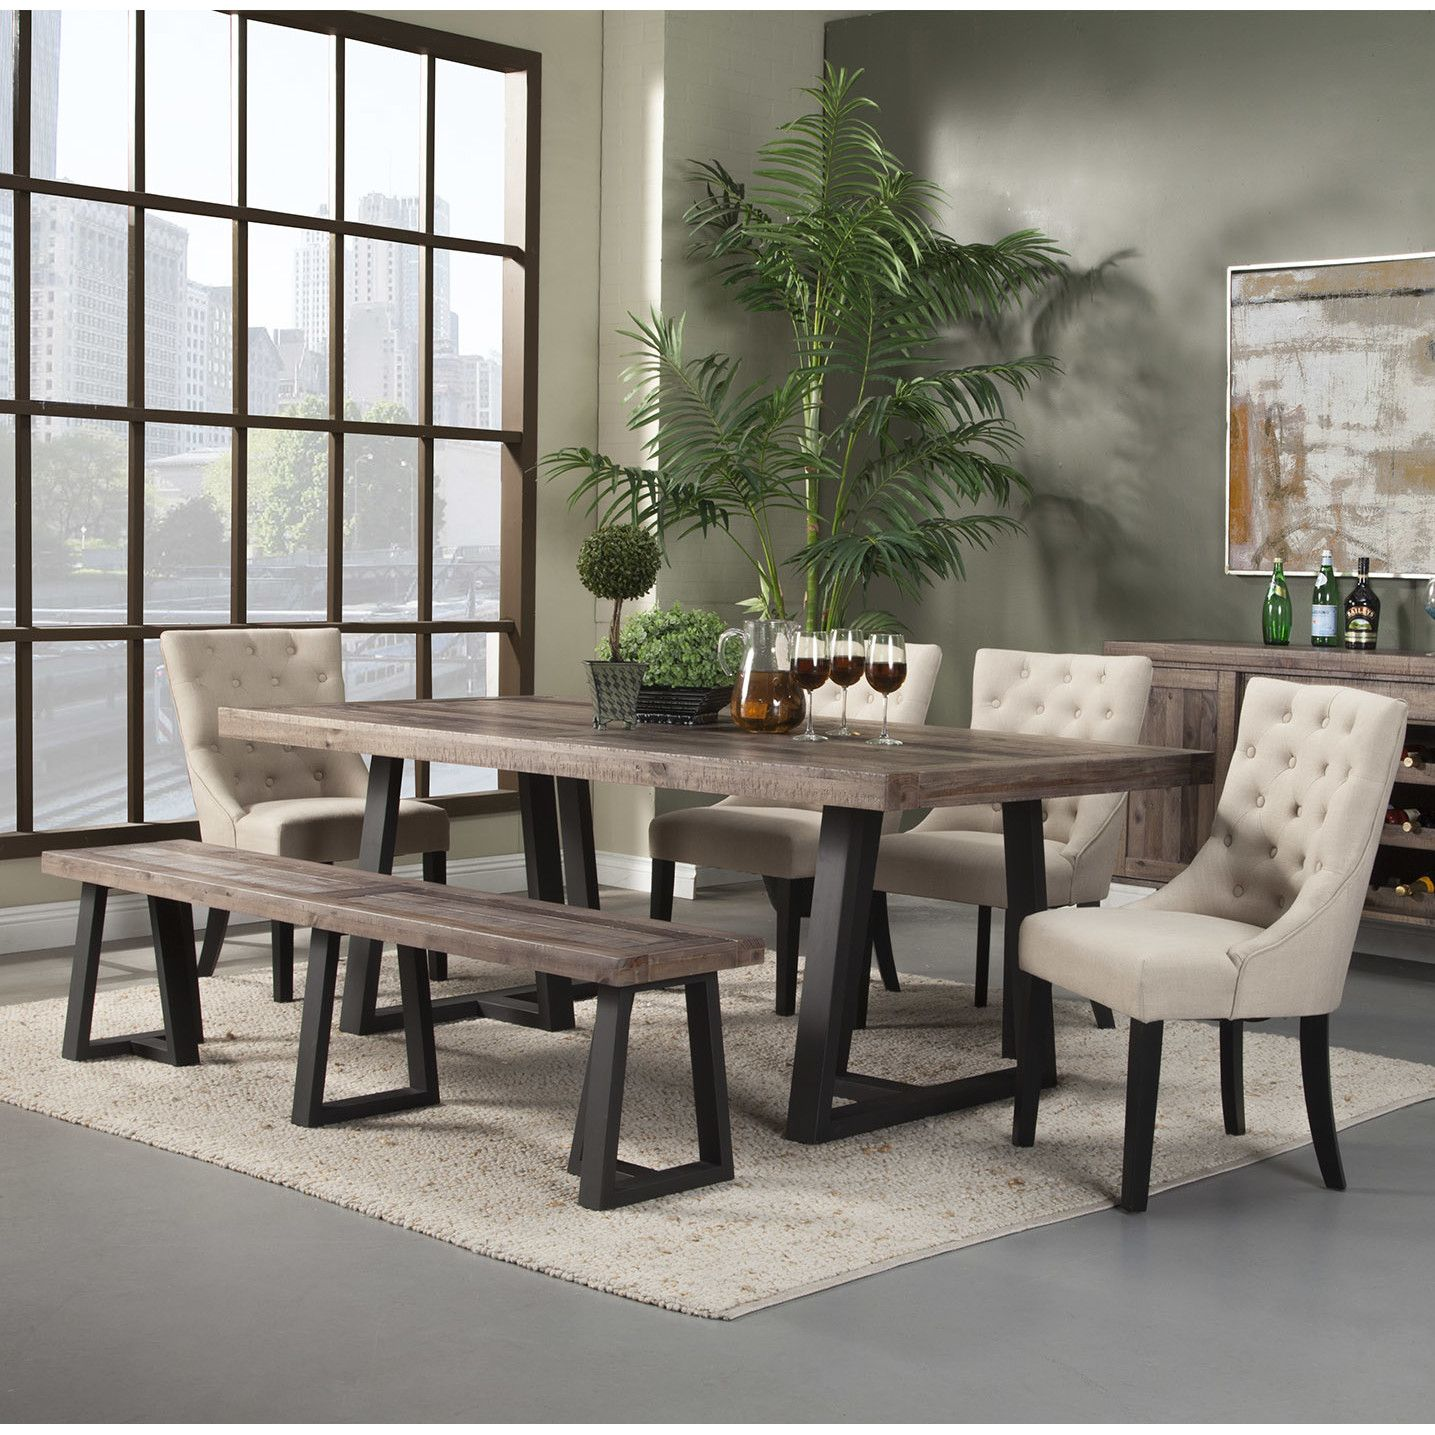 Laurel Foundry Modern Farmhouse Adell 6 Piece Dining Set